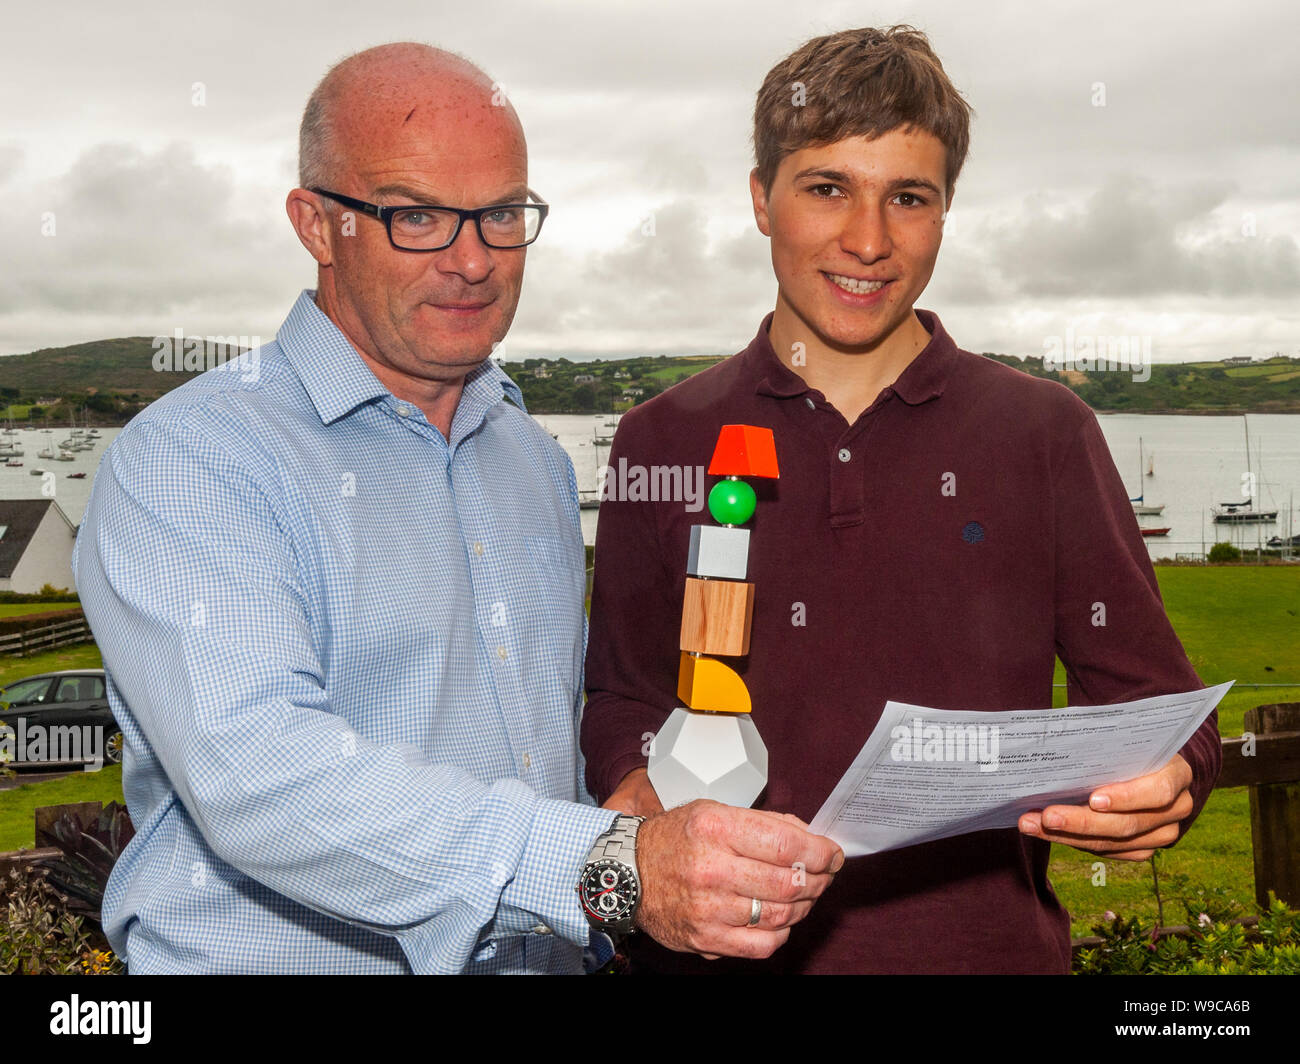 schull-west-cork-ireland-13th-aug-2019-almost-59000-students-were-due-to-receive-their-leaving-cert-results-today-a-day-earlier-than-previous-years-checking-his-results-was-google-science-award-winner-fionn-ferreira-with-school-principal-brendan-drinan-credit-andy-gibsonalamy-live-news-W9CA6B.jpg